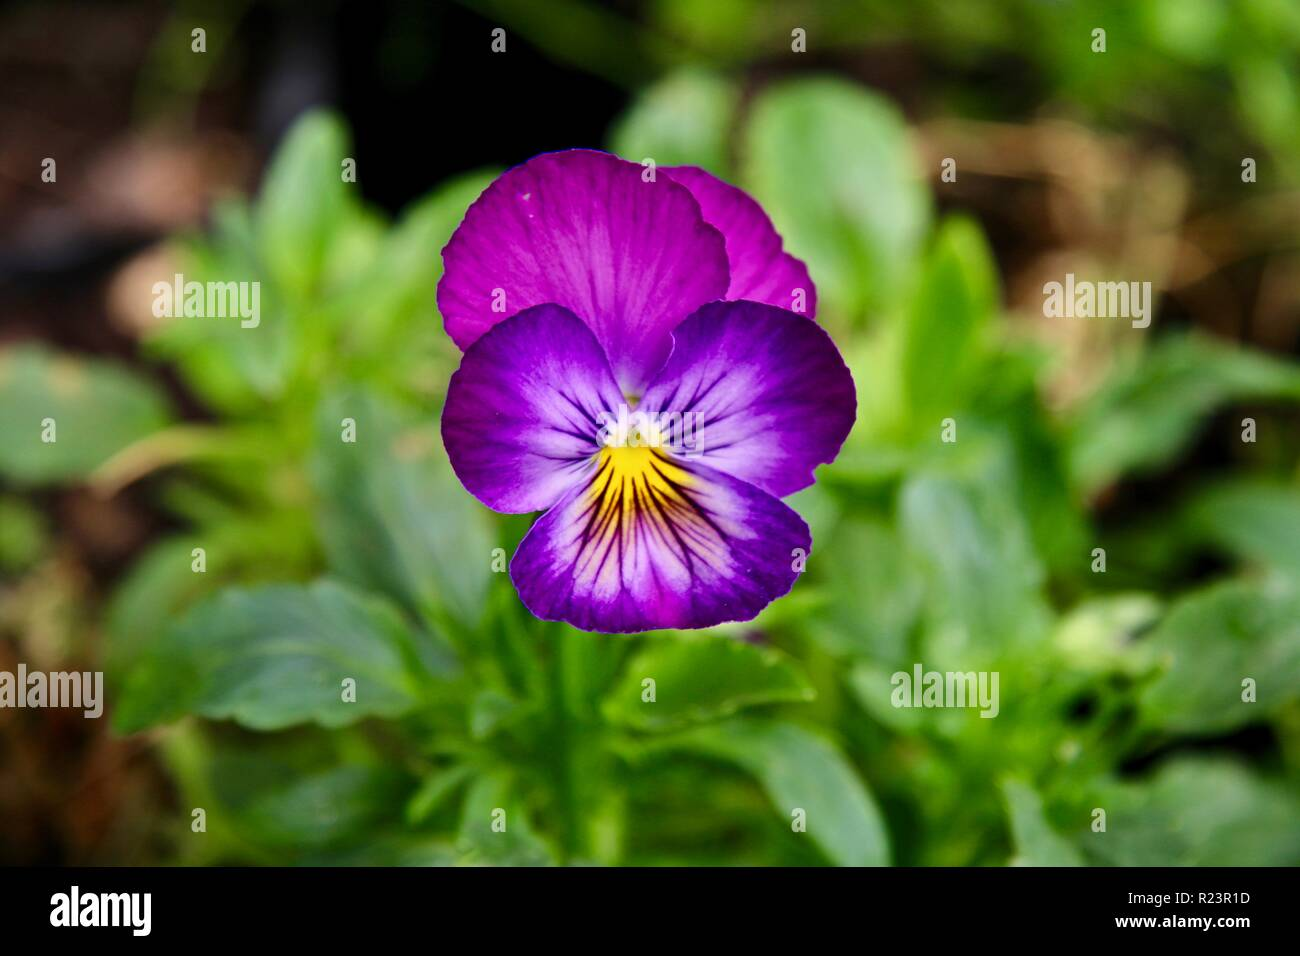 A lone deep pink and purple violet flower in a garden Stock Photo